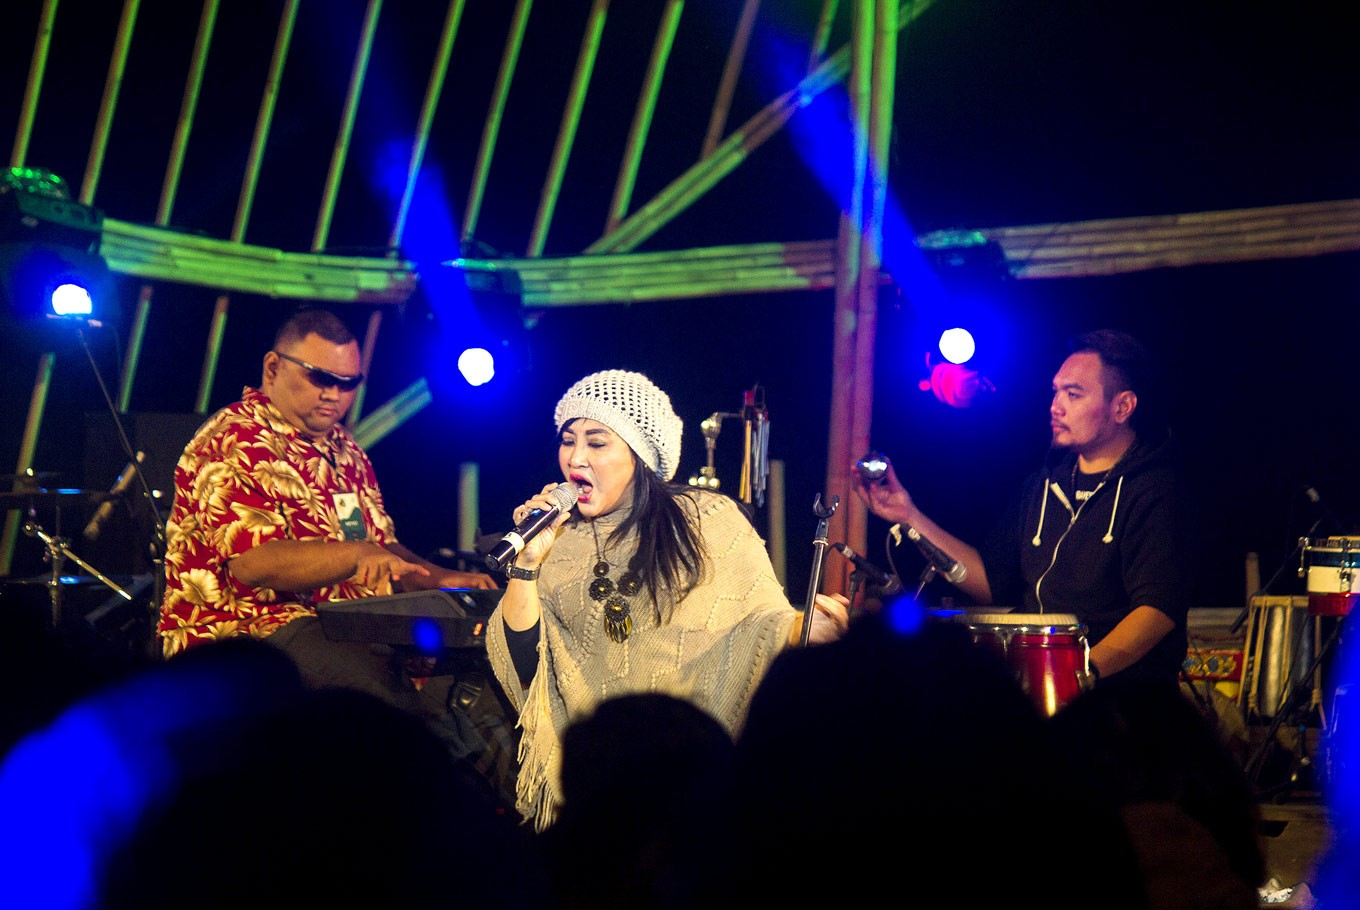 Remember: Surabaya All Stars pay tribute to the late Bubi Chen, a legendary Indonesian jazz musician.